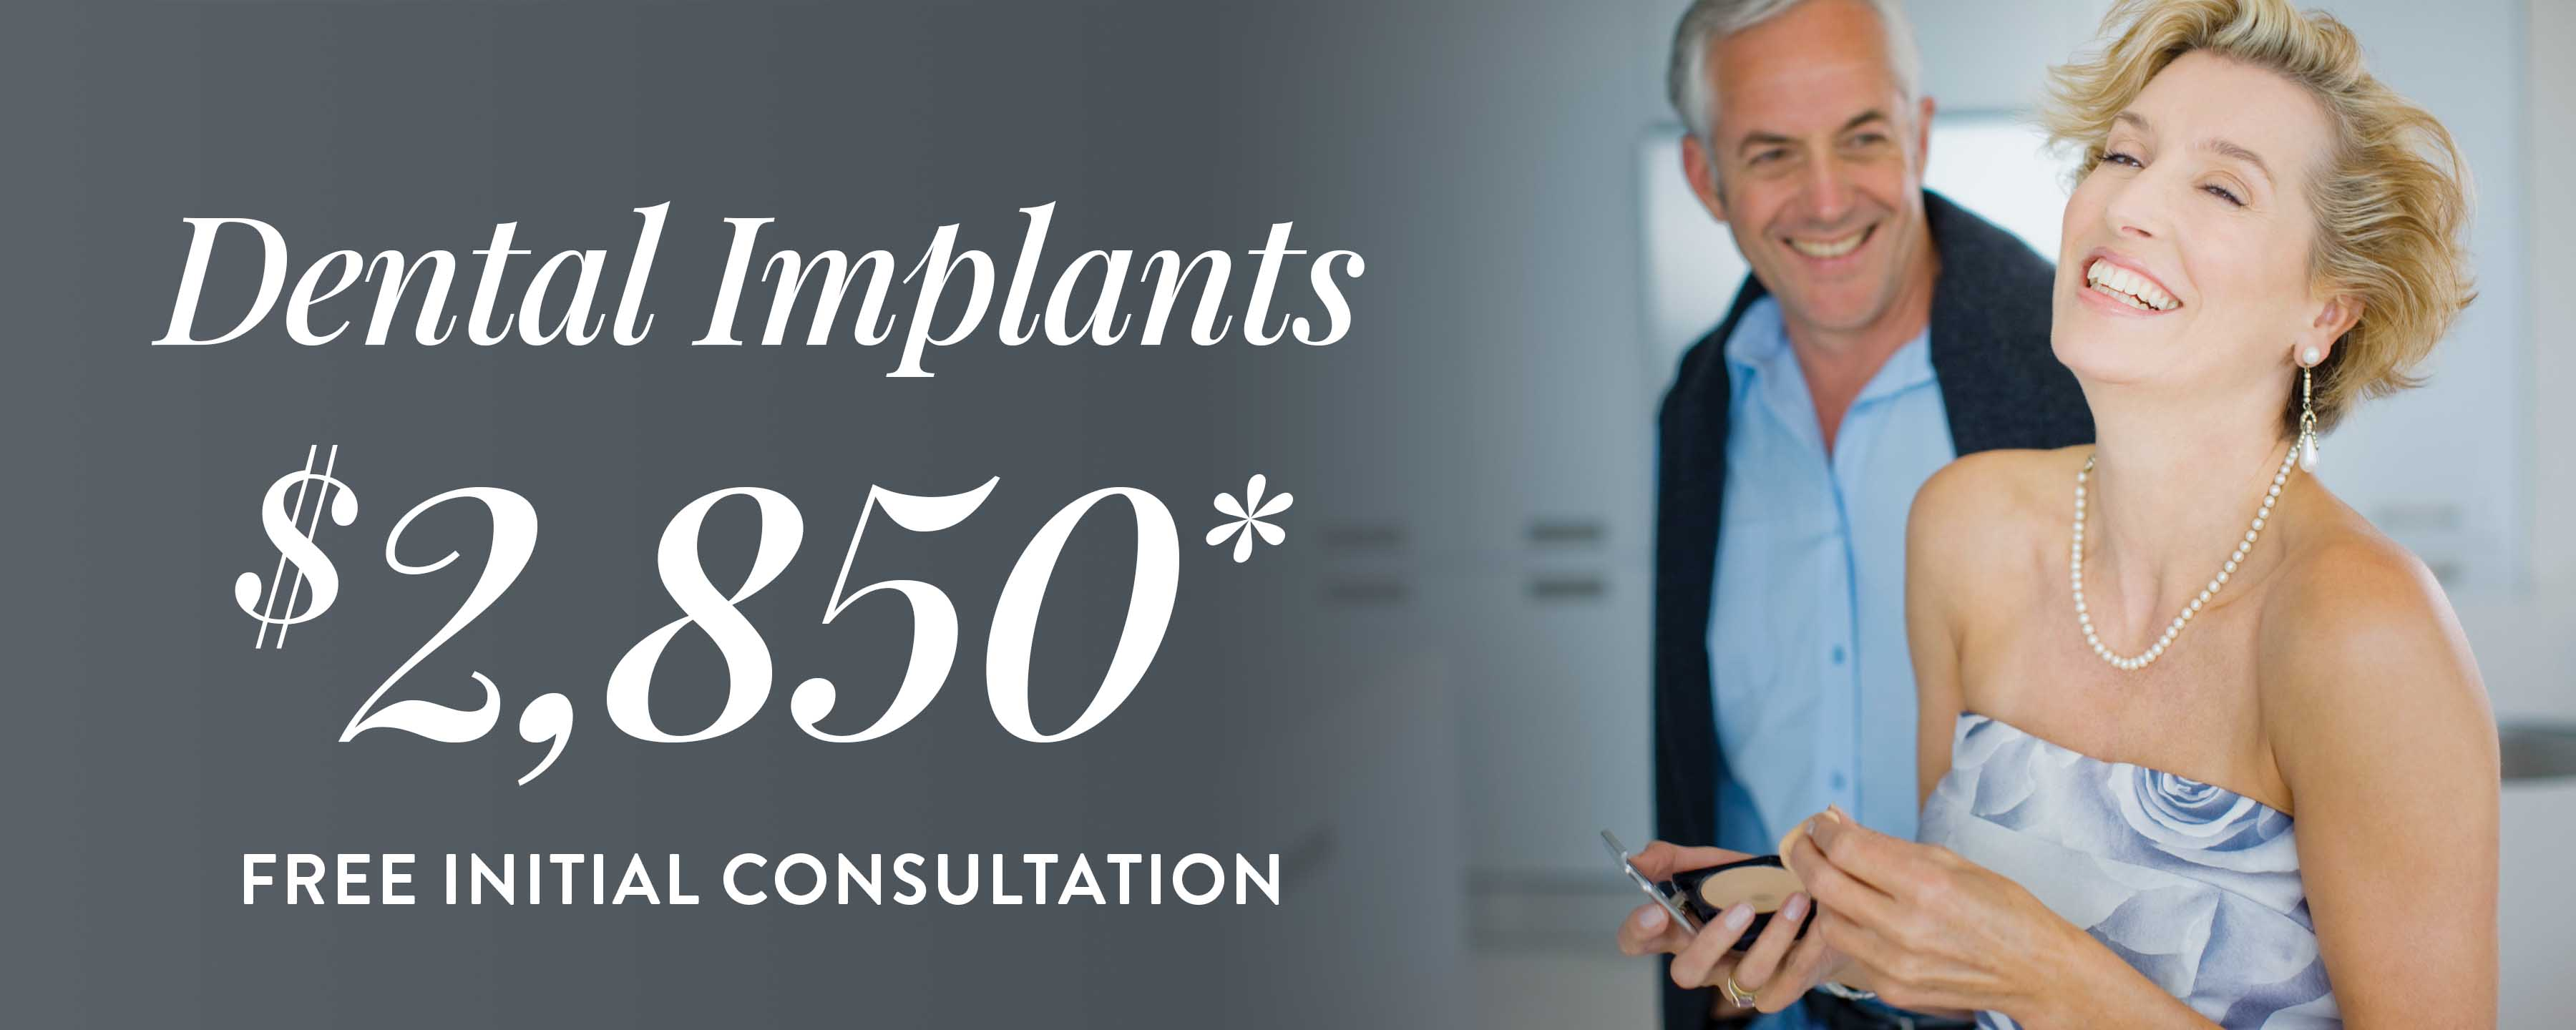 $2,850 Dental Implants + Free Initial Consultation*